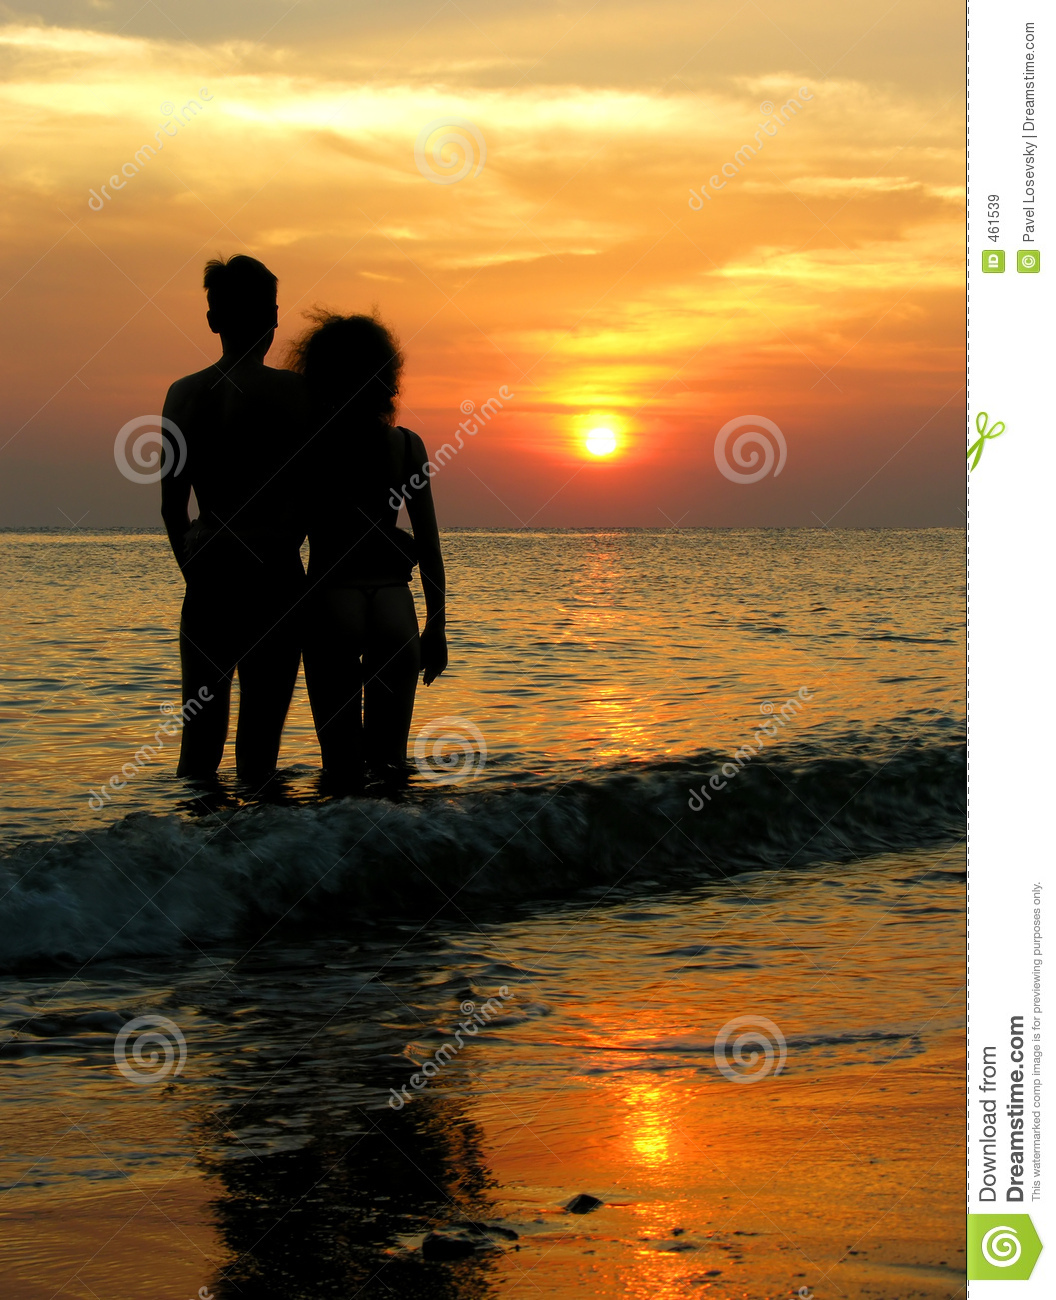 Couple At The Beach Stock Image Image Of Caucasian: Couple On Beach. Sunrise. Stock Image. Image Of Golden